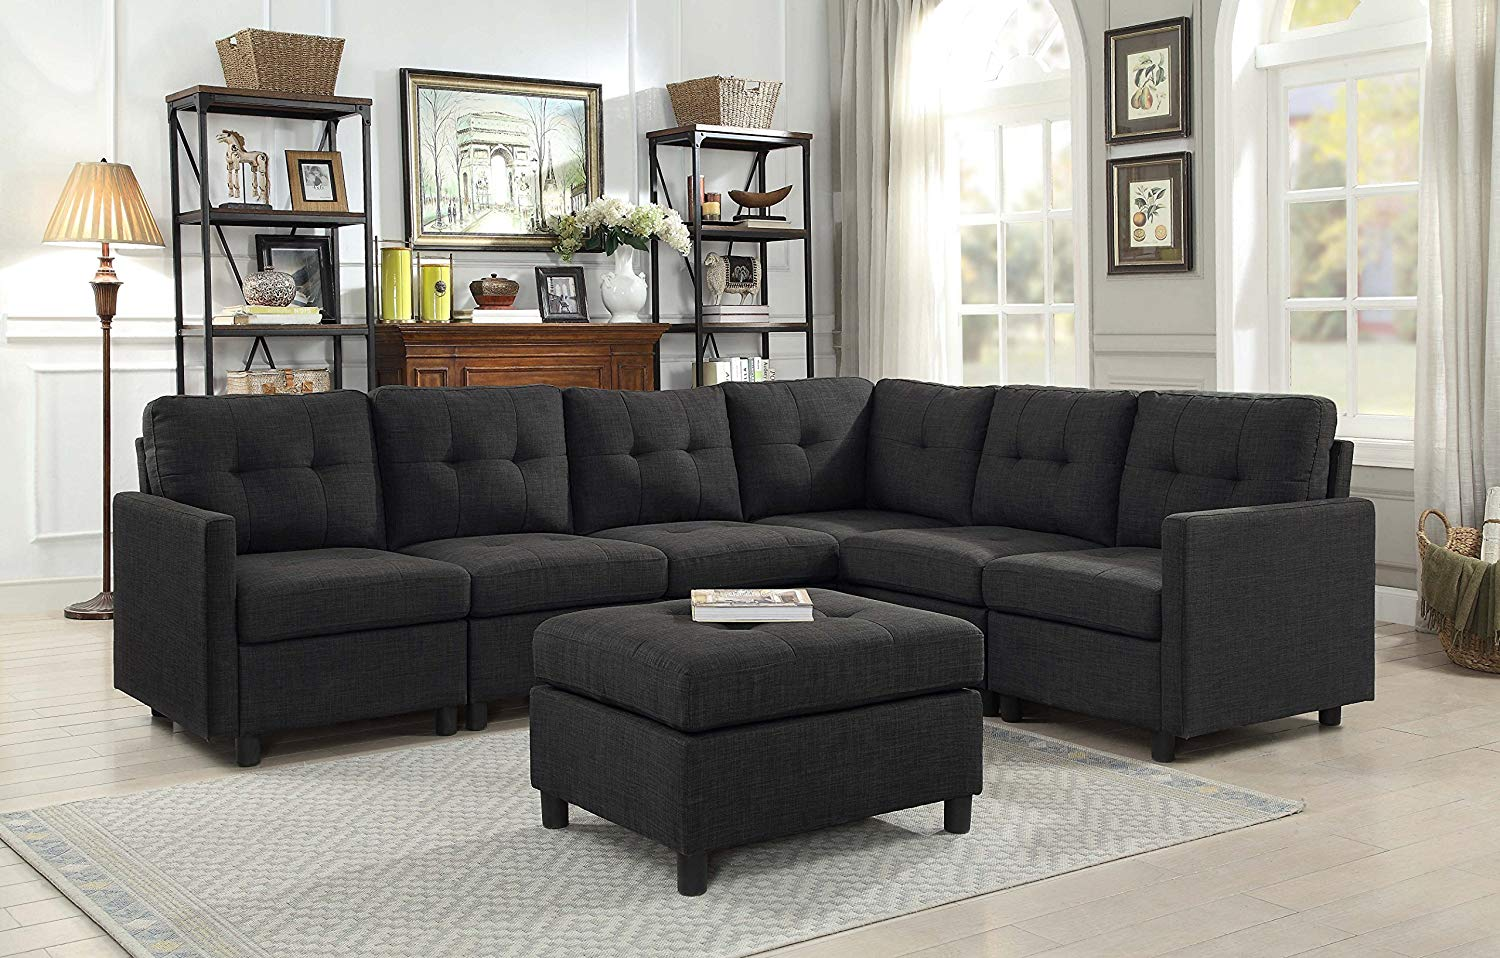 Tremendous Cheap Top Sectional Sofas Find Top Sectional Sofas Deals On Interior Design Ideas Helimdqseriescom